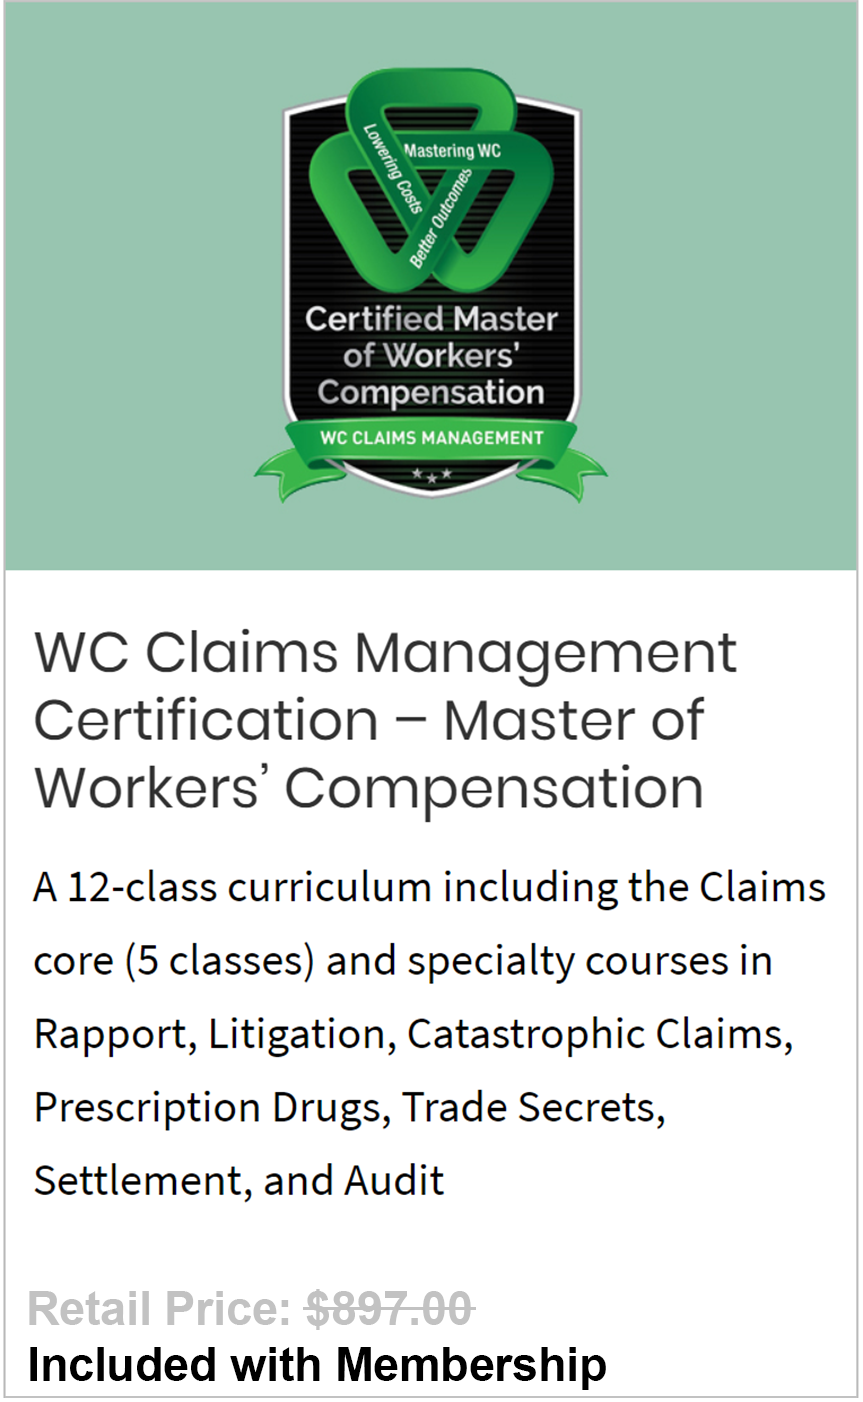 WC Claims Management Certification – Master of Workers' Compensation